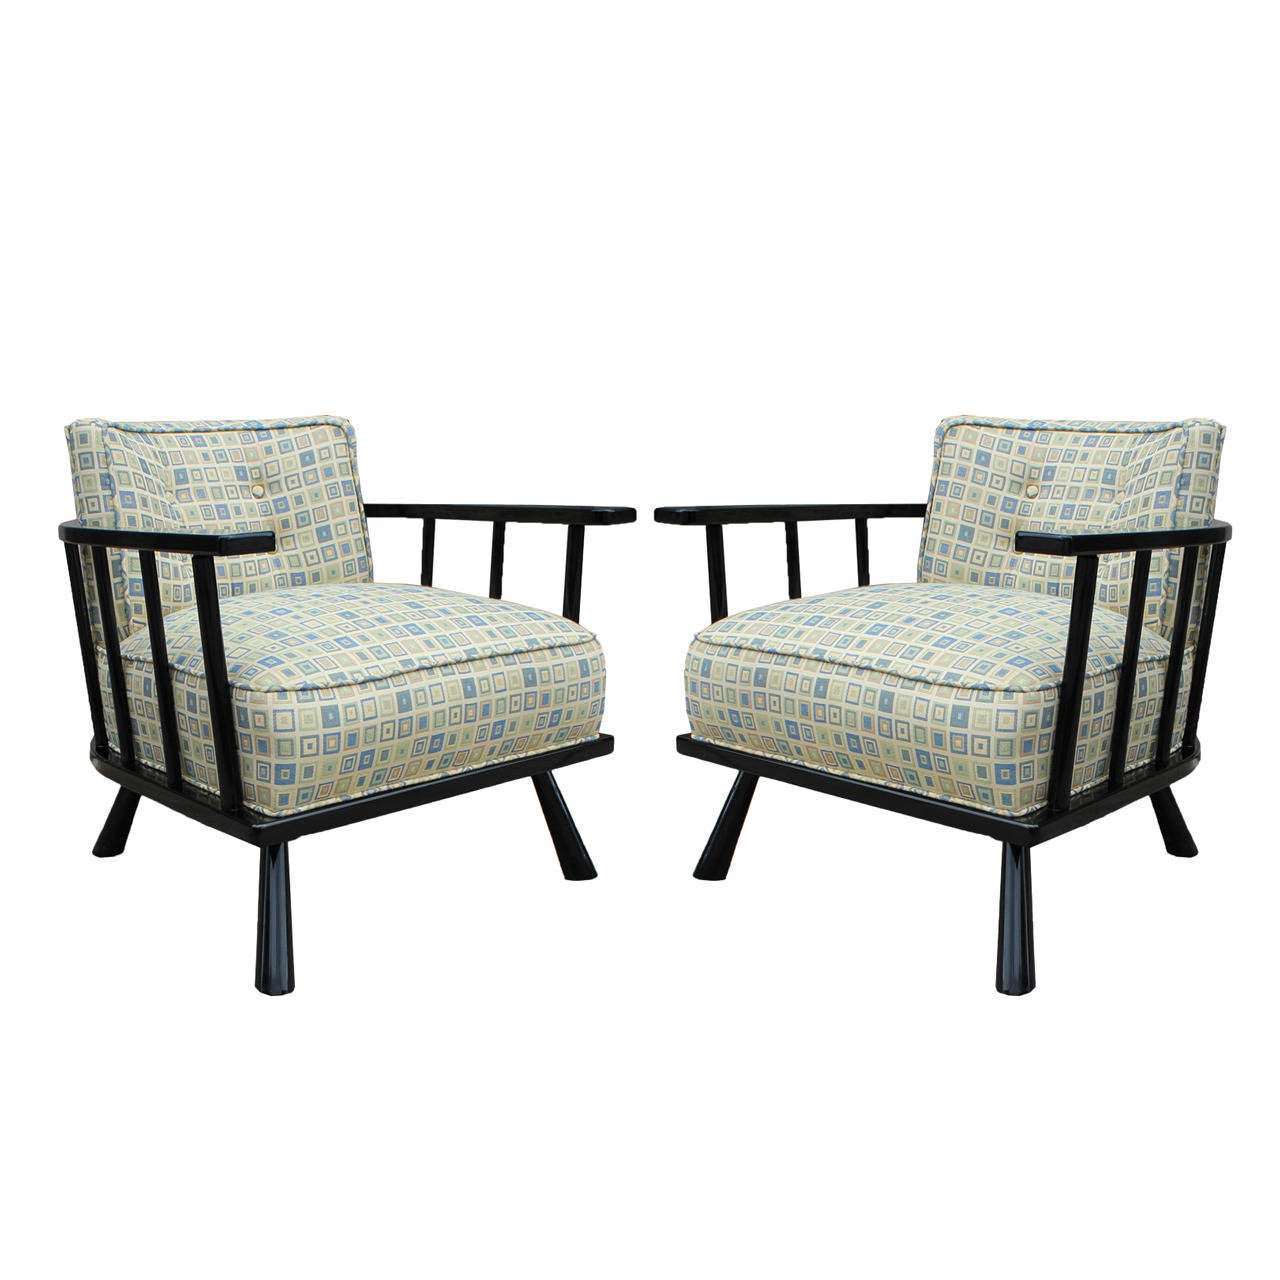 Awesome Pair Of Mid Century Modern Widdicomb Robsjohn Gibbings Chairs For Sale